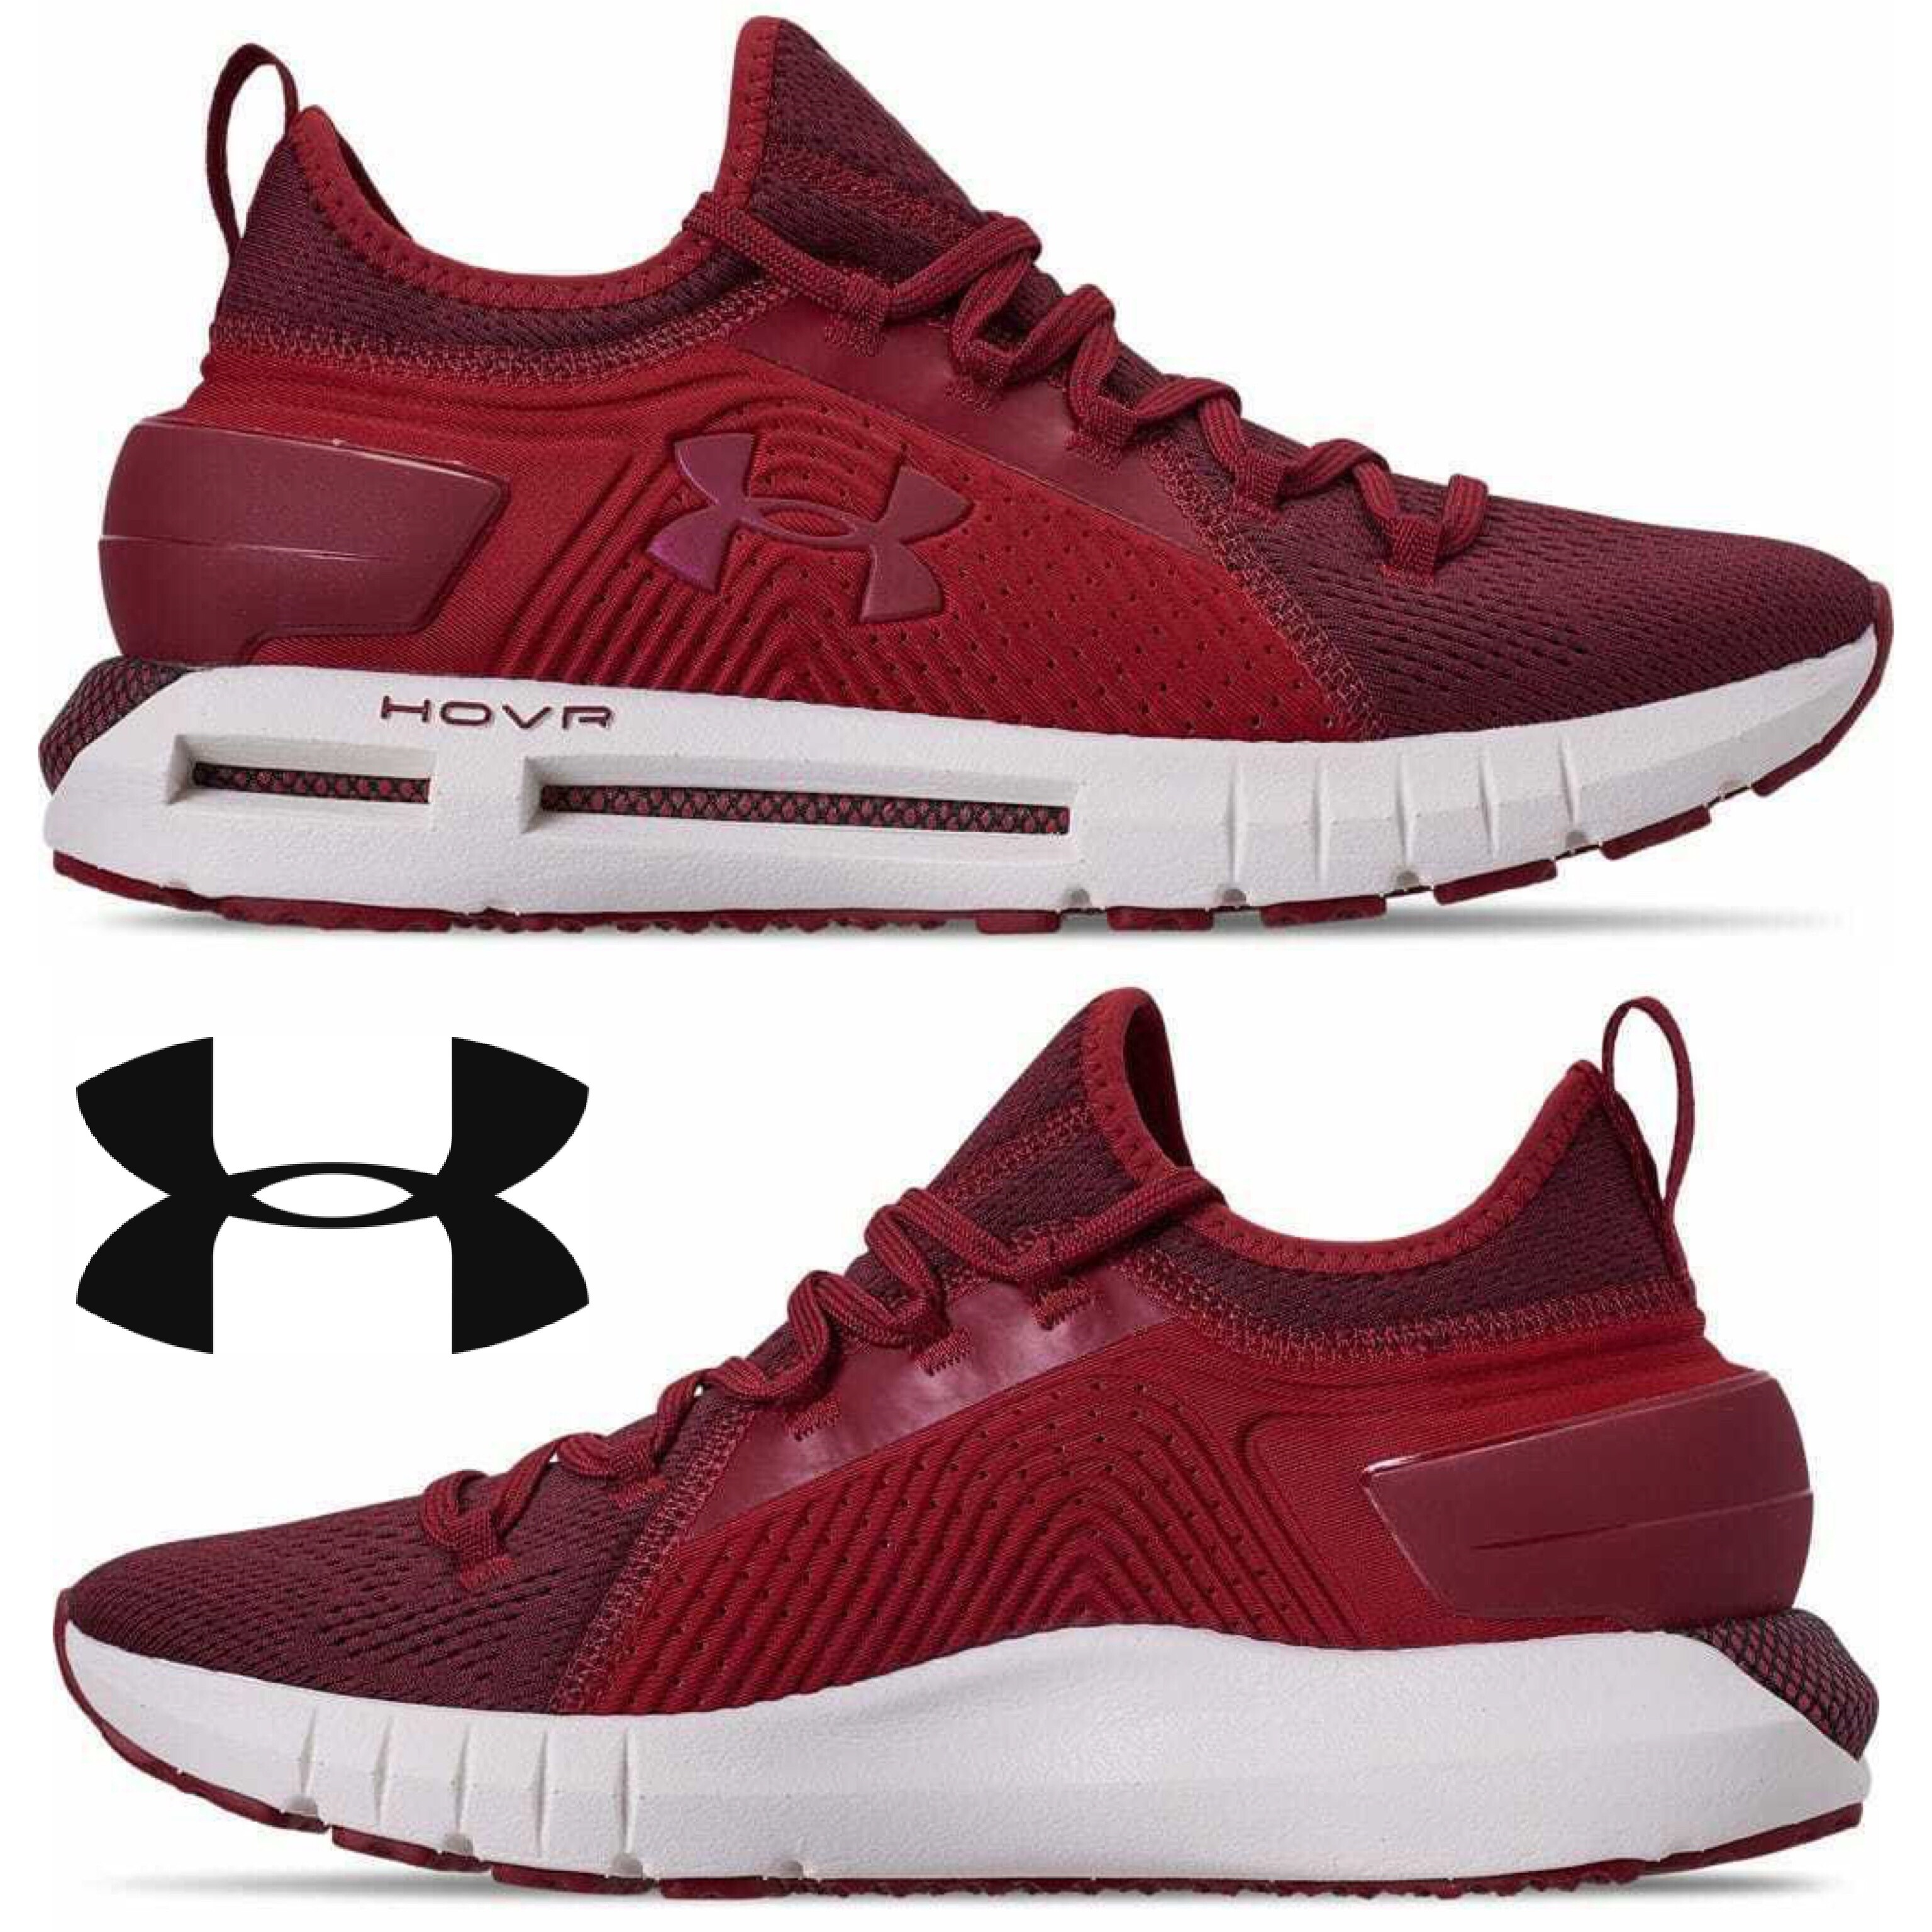 buy online 51182 d84d6 Details about Under Armour Hovr Phantom Men's Sneakers Running Comfort  Sport Gym Casual NIB